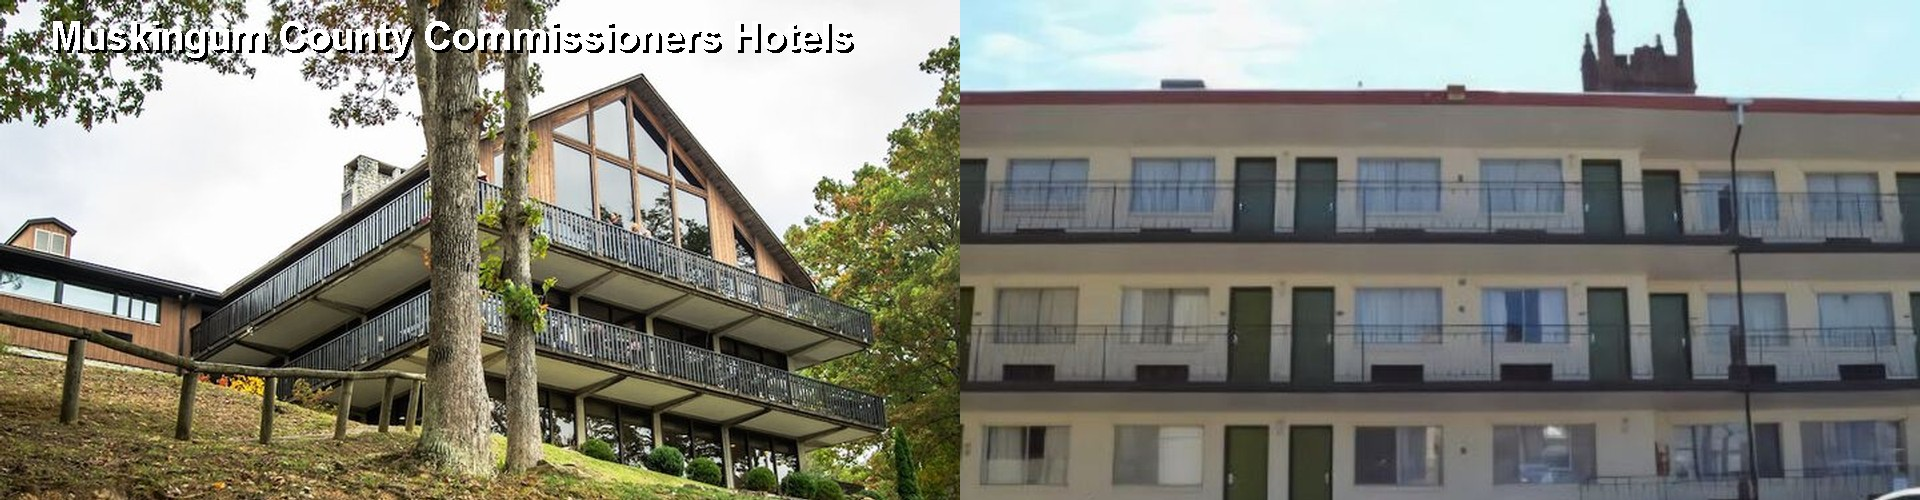 5 Best Hotels near Muskingum County Commissioners